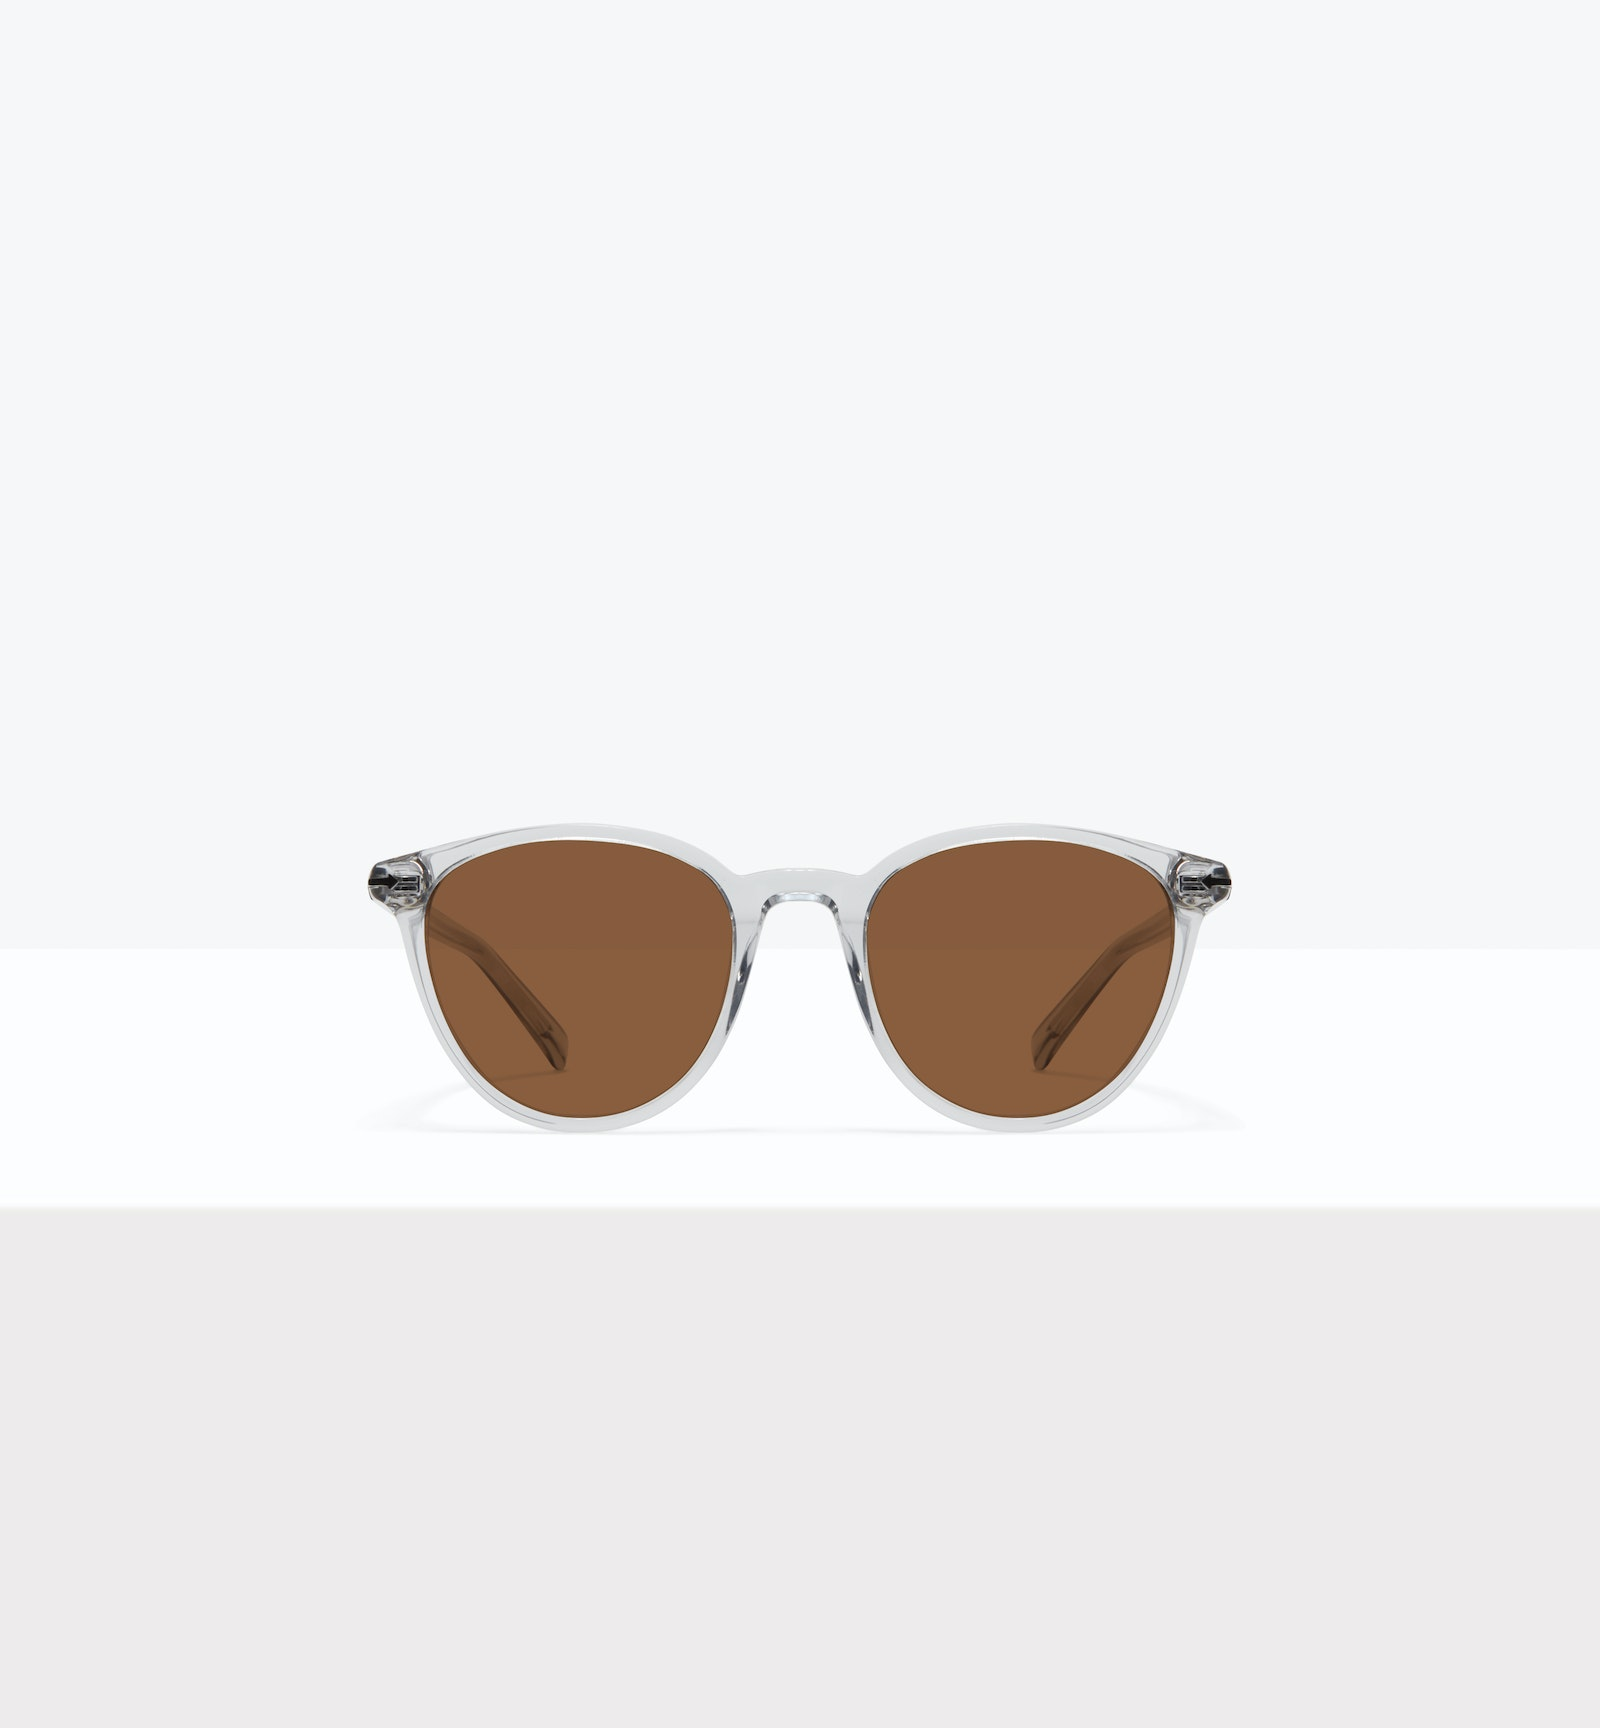 Affordable Fashion Glasses Round Sunglasses Women London Taupe